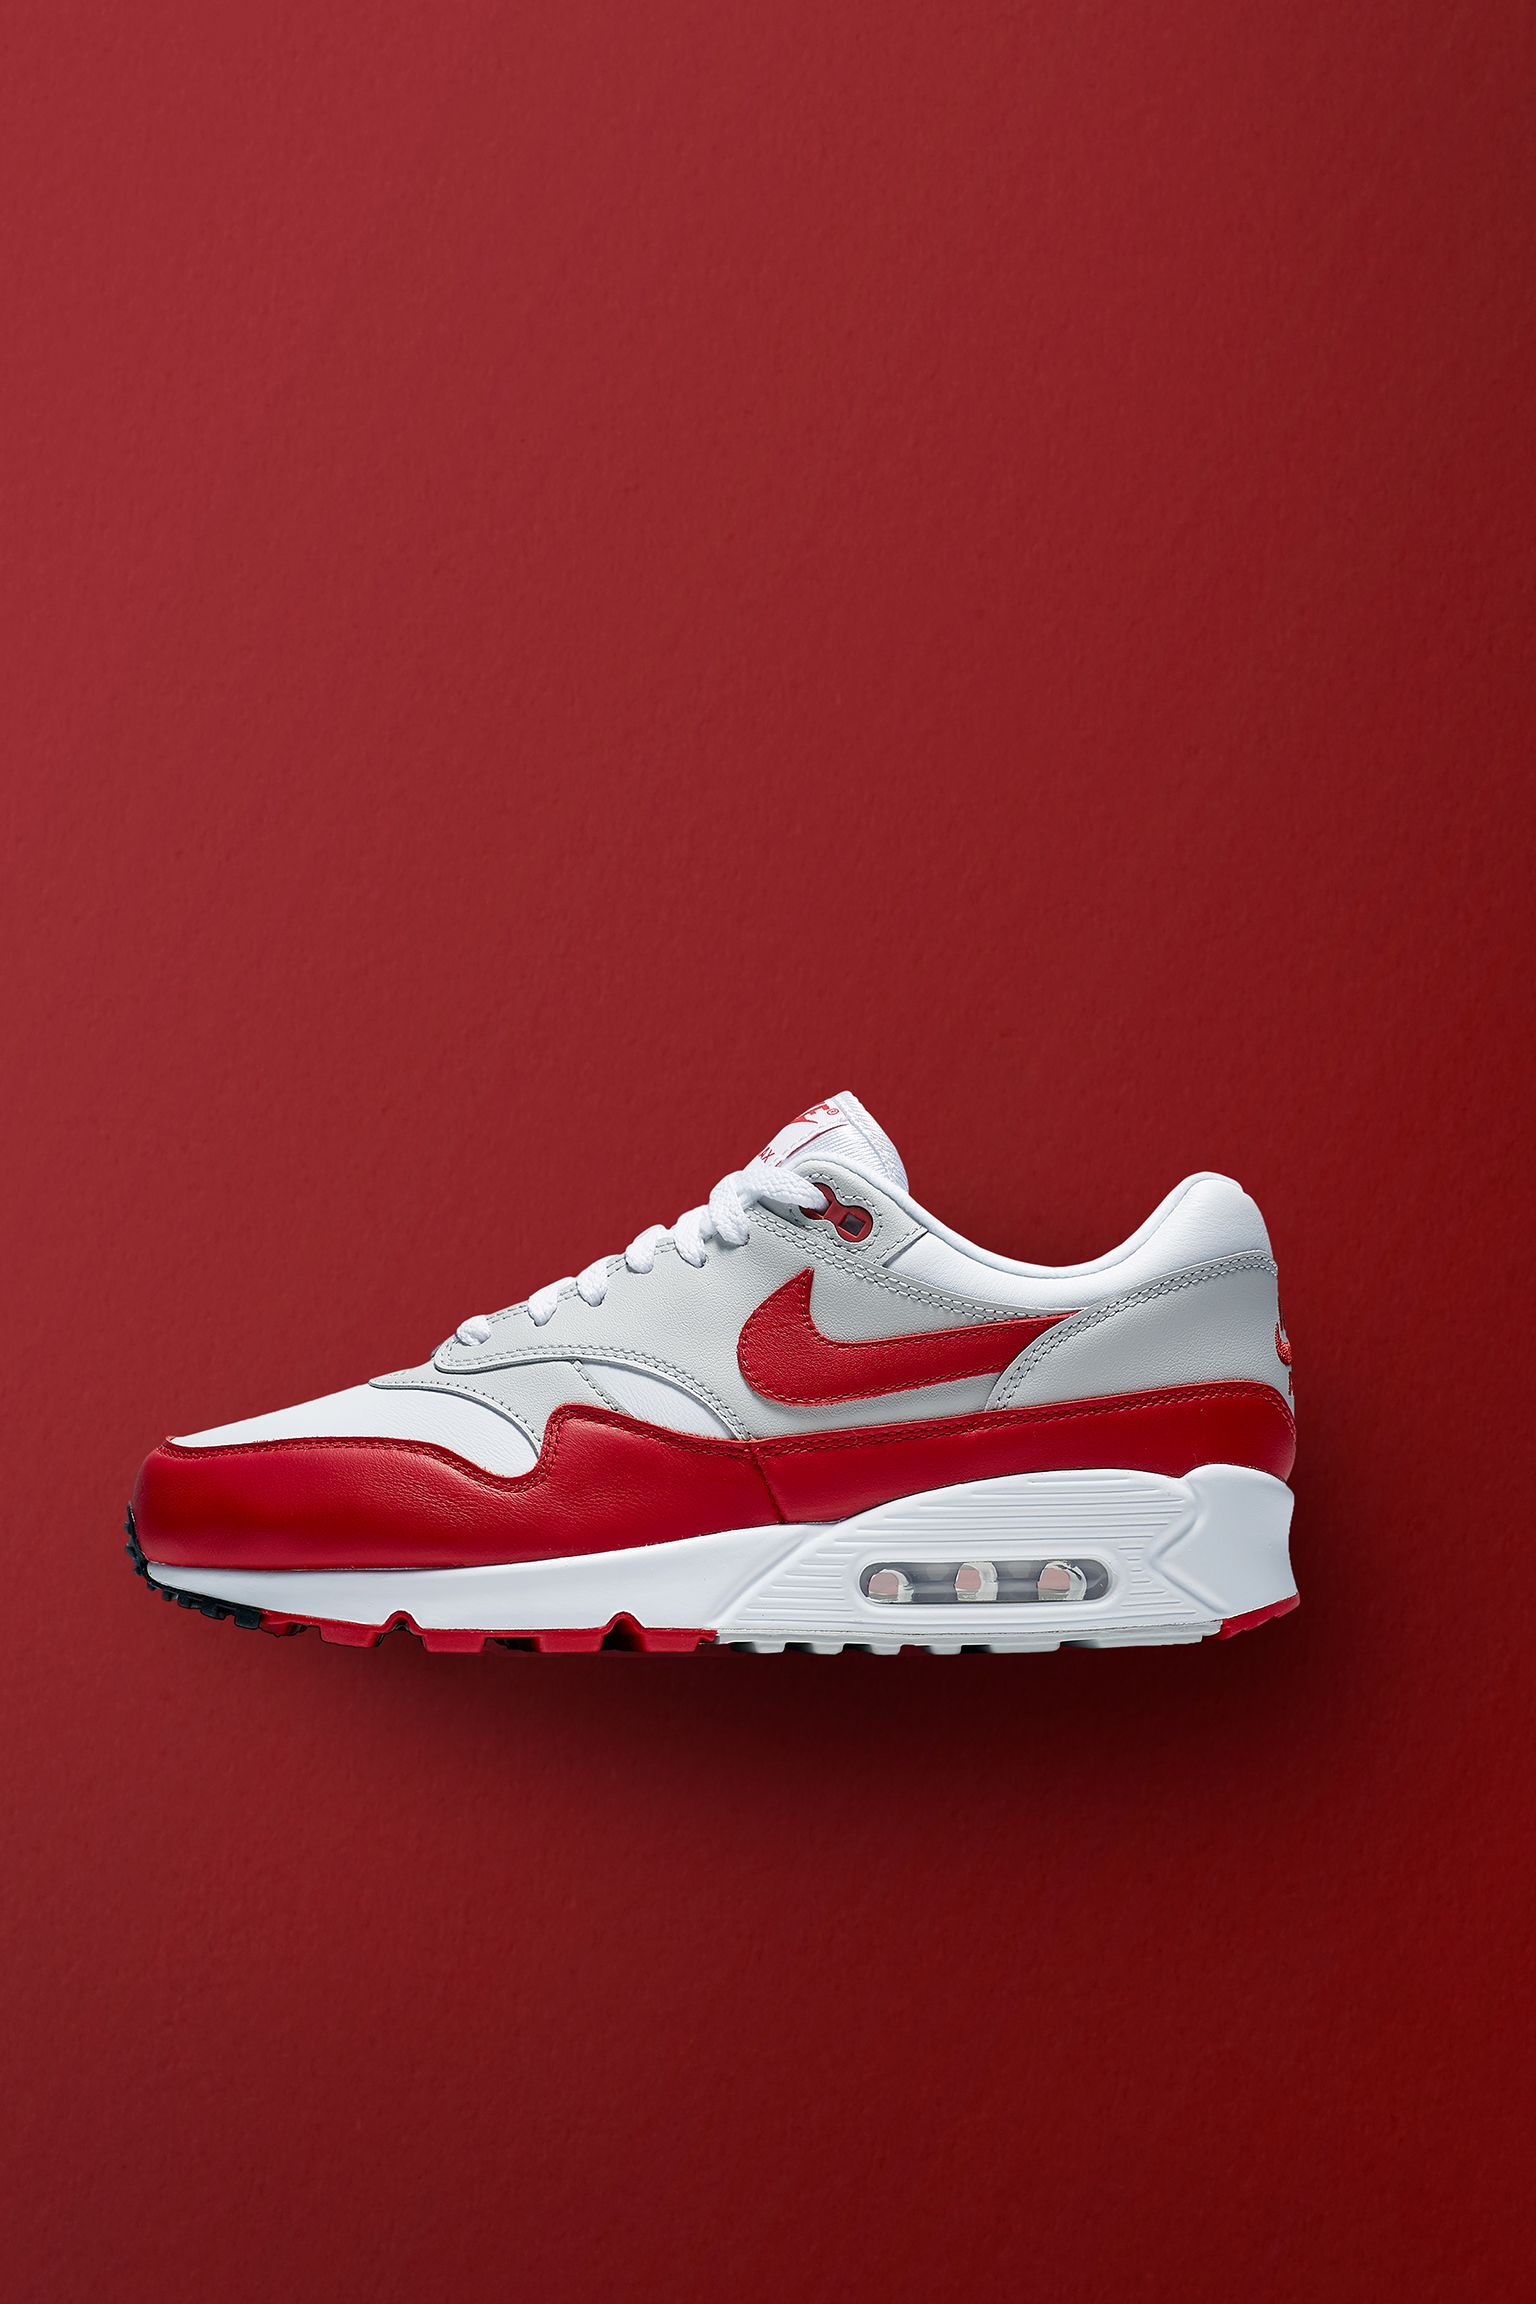 81539d1c Nike Air Max 90/1 'White & University Red' Release Date. Nike⁠+ ...